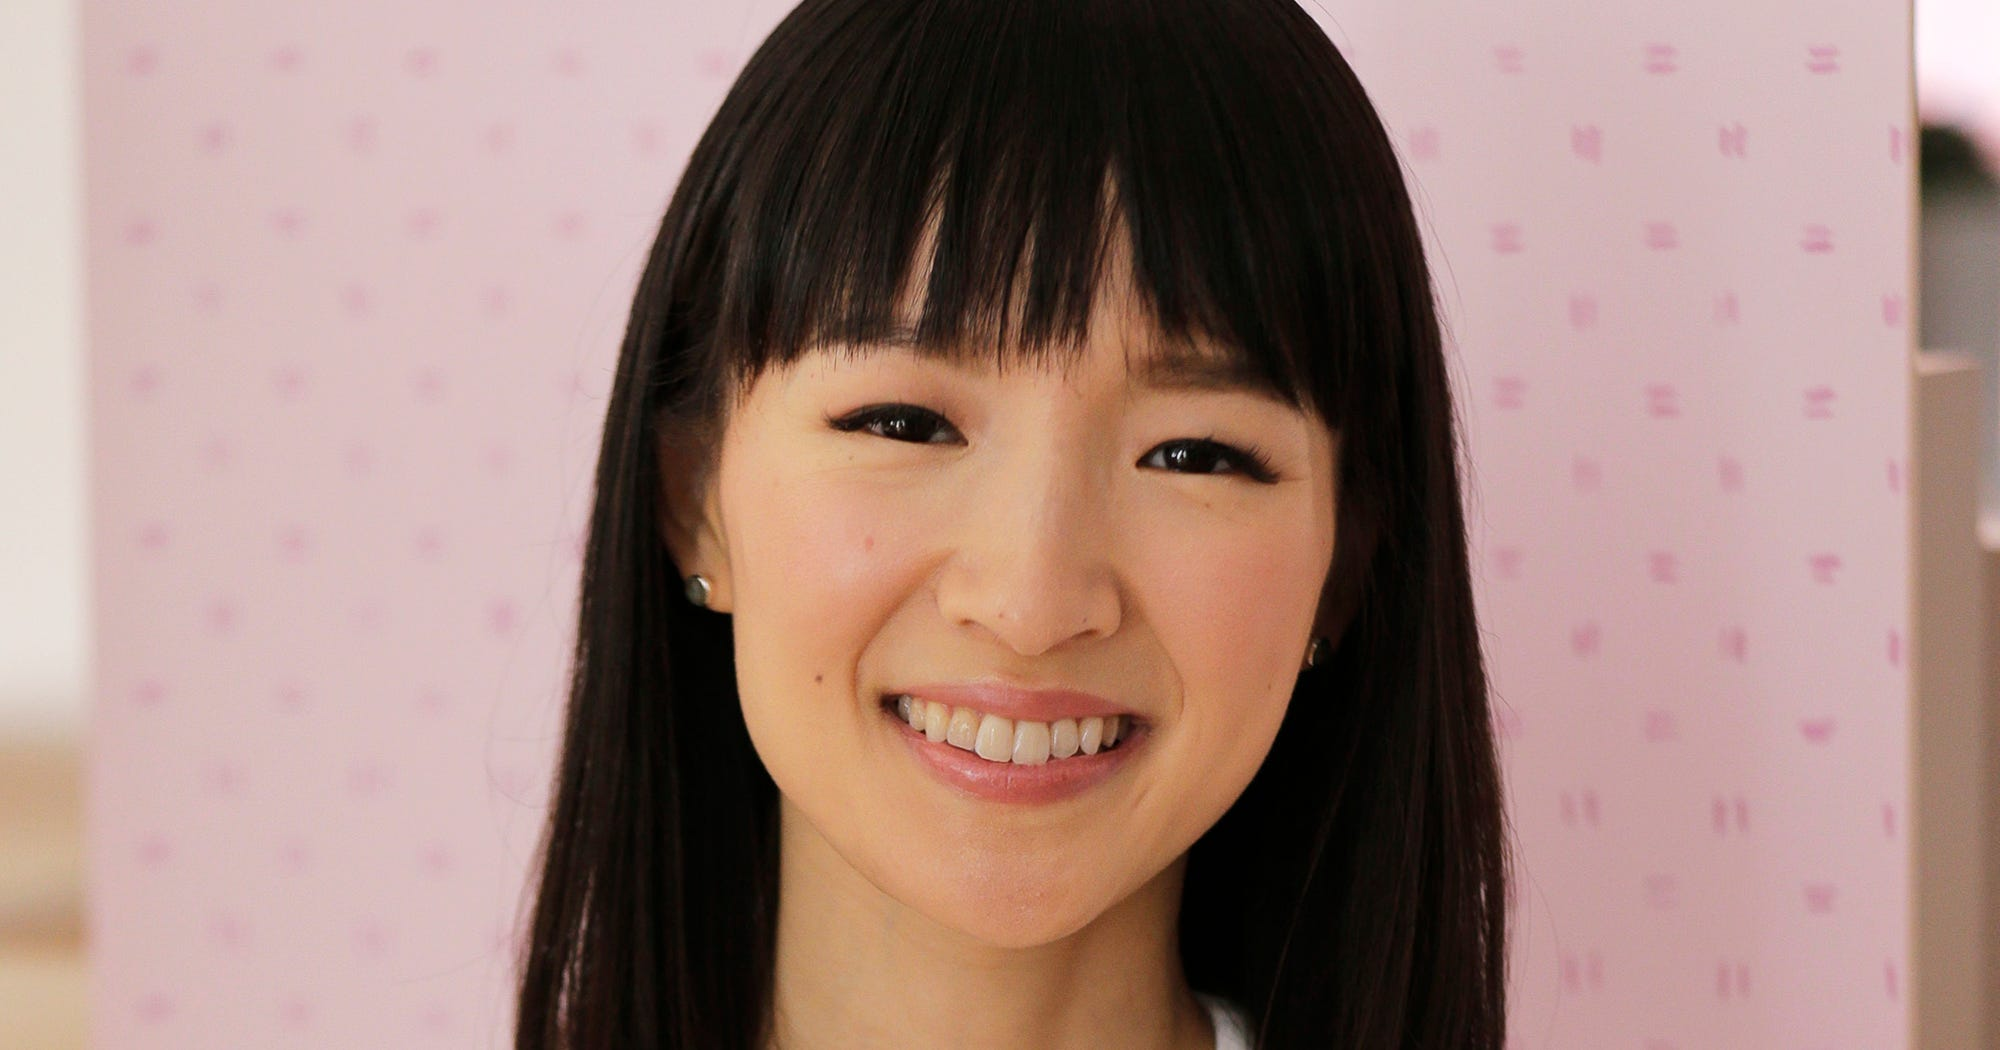 Why You Should Marie Kondo Your Friendships